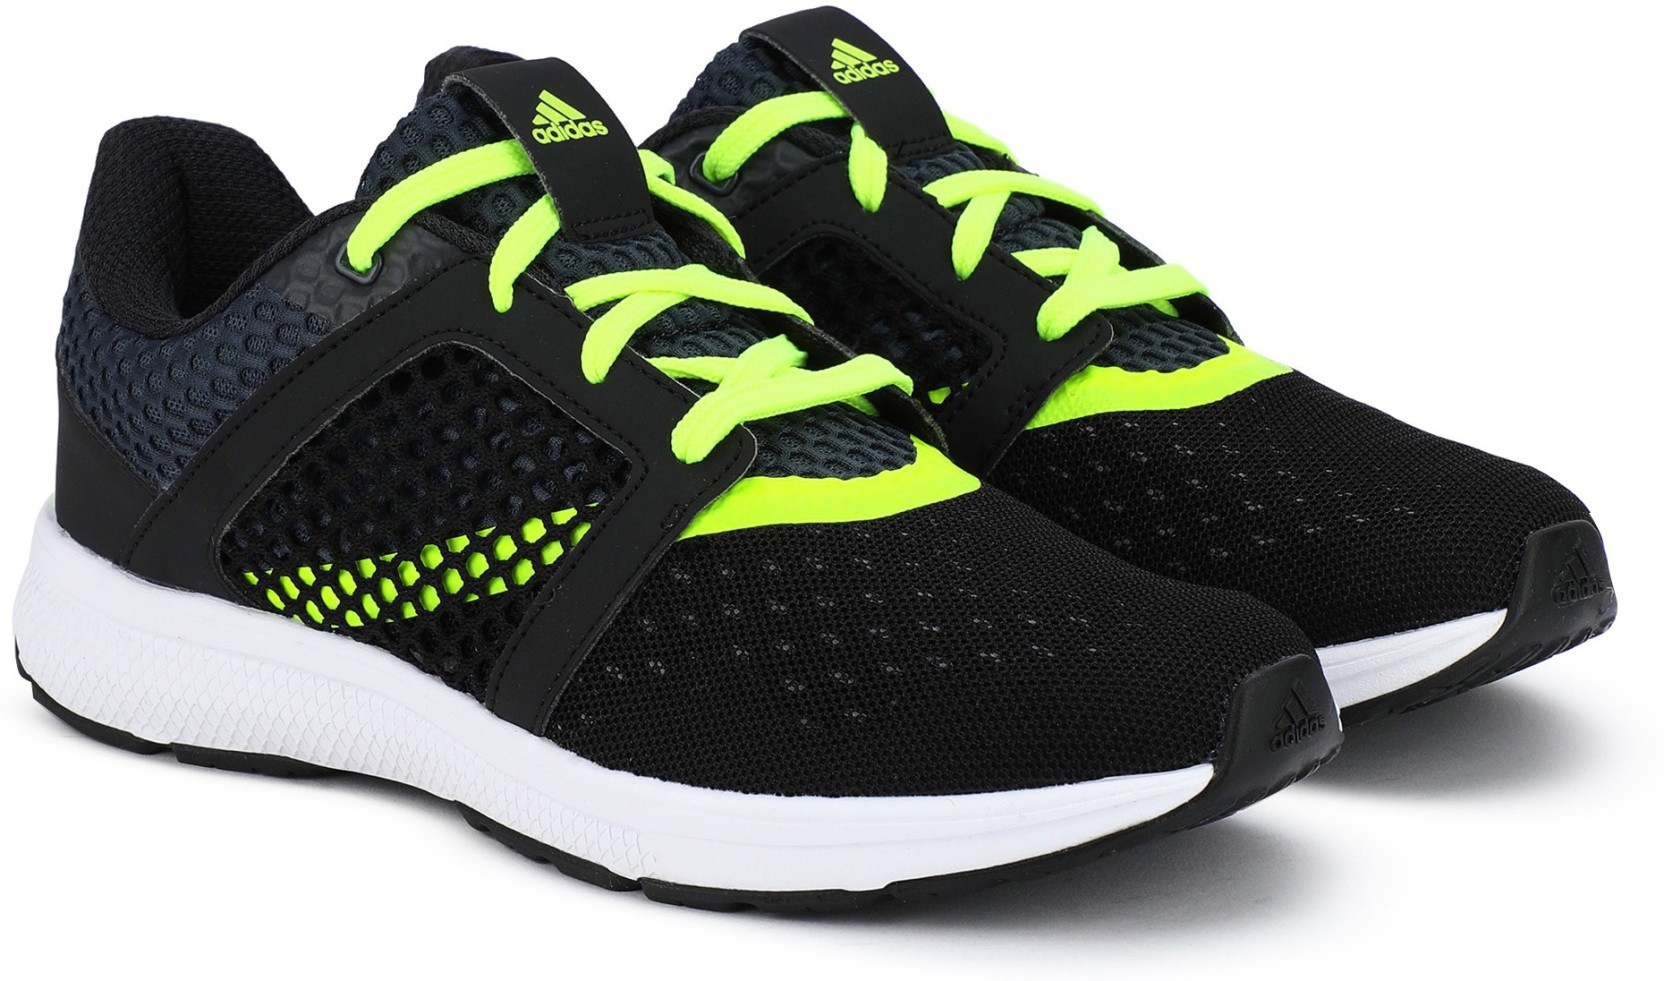 wholesale dealer a9ad6 272b8 ADIDAS YAMO 1.0 M Running Shoes For Men (Black)